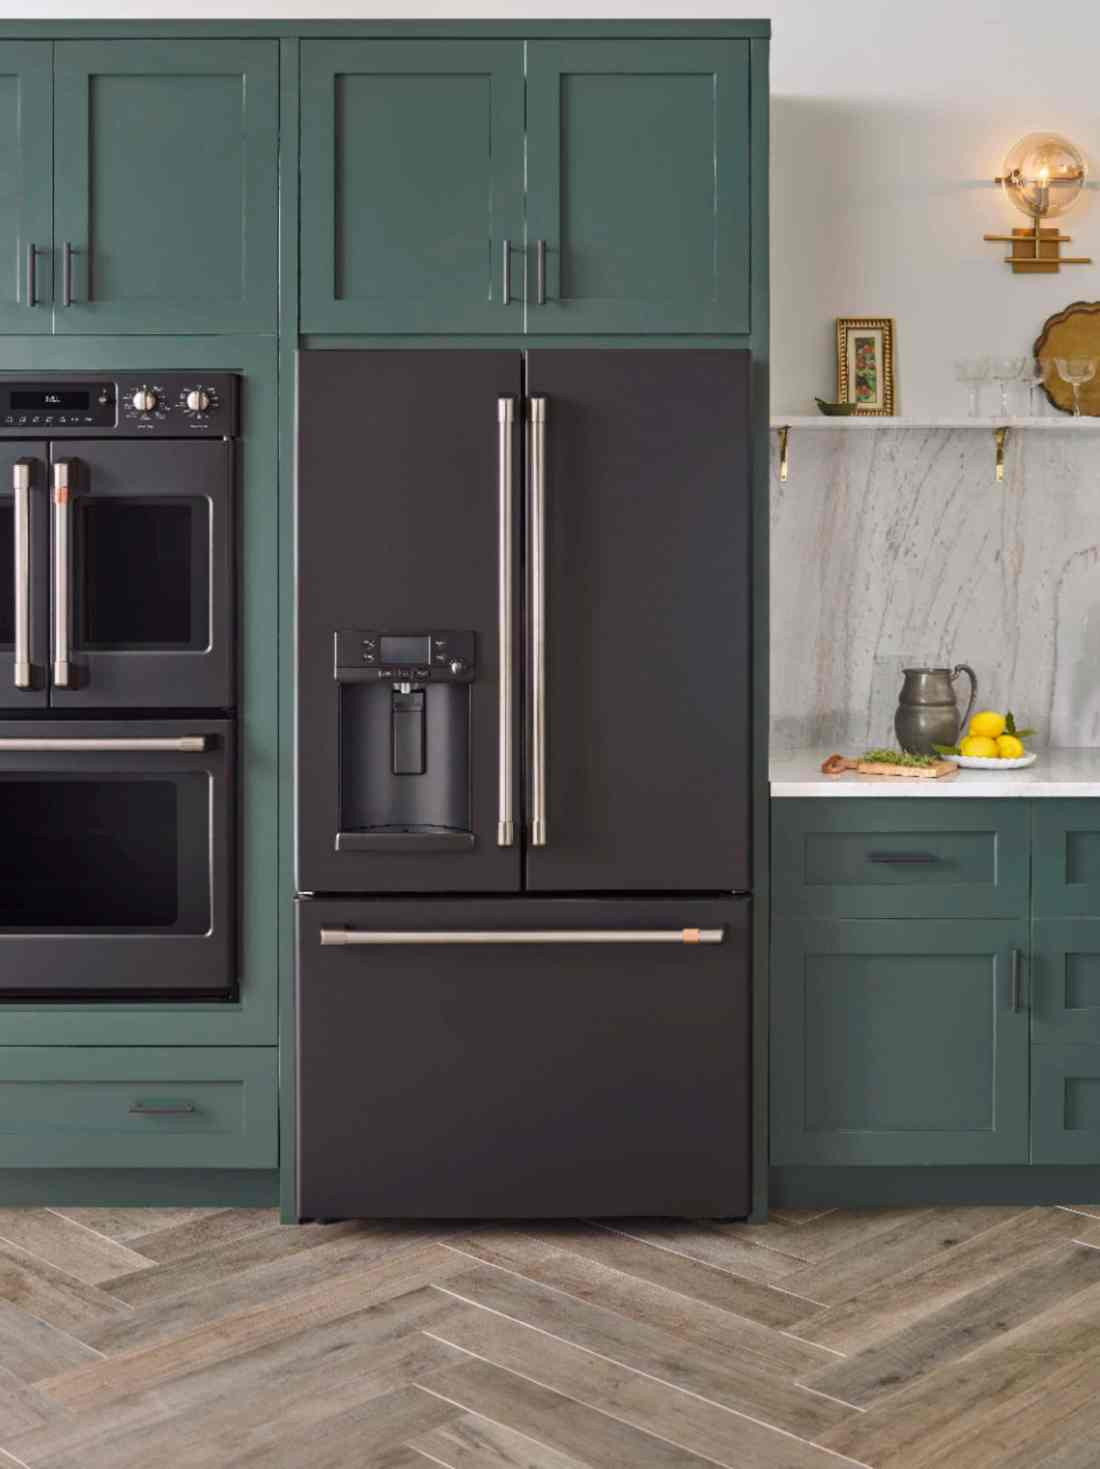 Black Matte GE Kitchen fridge Modern Kitchen Idea. Introducing the Café Matte Collection from GE, a collection of modern kitchen appliances that you can customize. Find them at your local Best Buy.